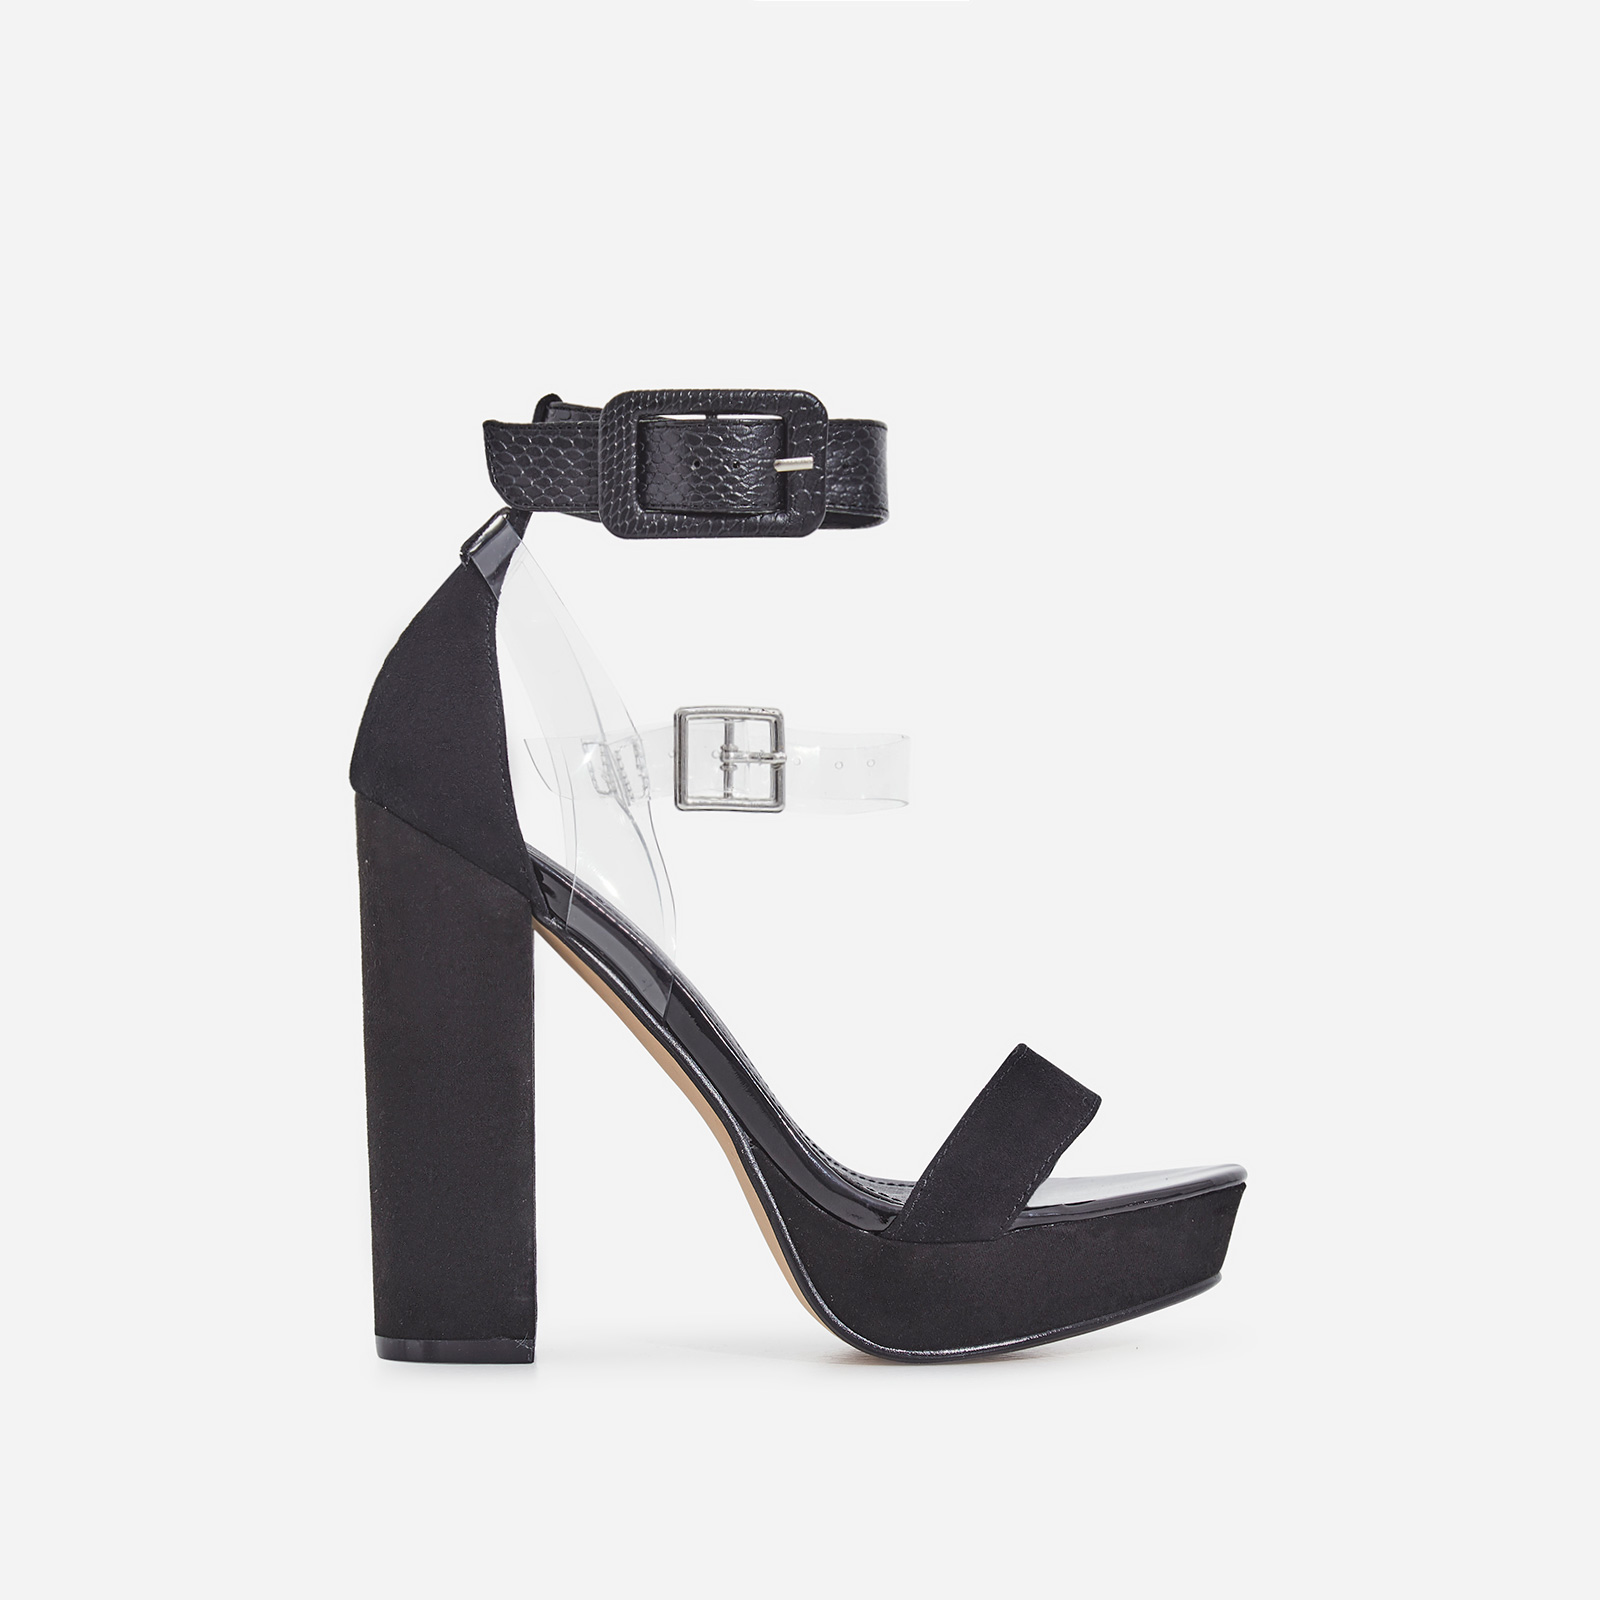 Moving Perspex Double Buckle Platform Heel In Black Faux Suede